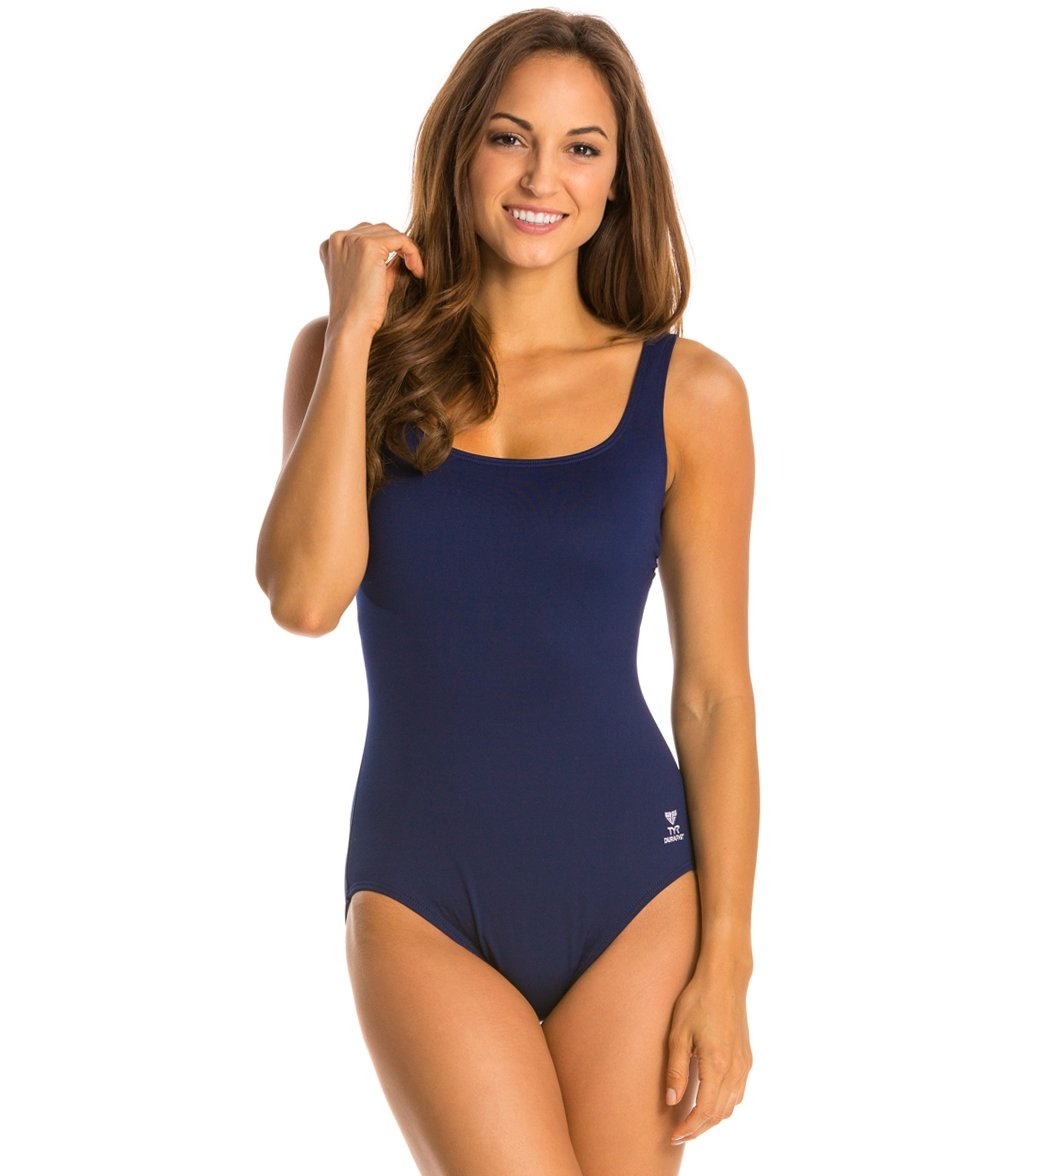 fb2818f441 TYR Solid Aqua Chlorine Resistant Controlfit One Piece Swimsuit at  SwimOutlet.com - Free Shipping